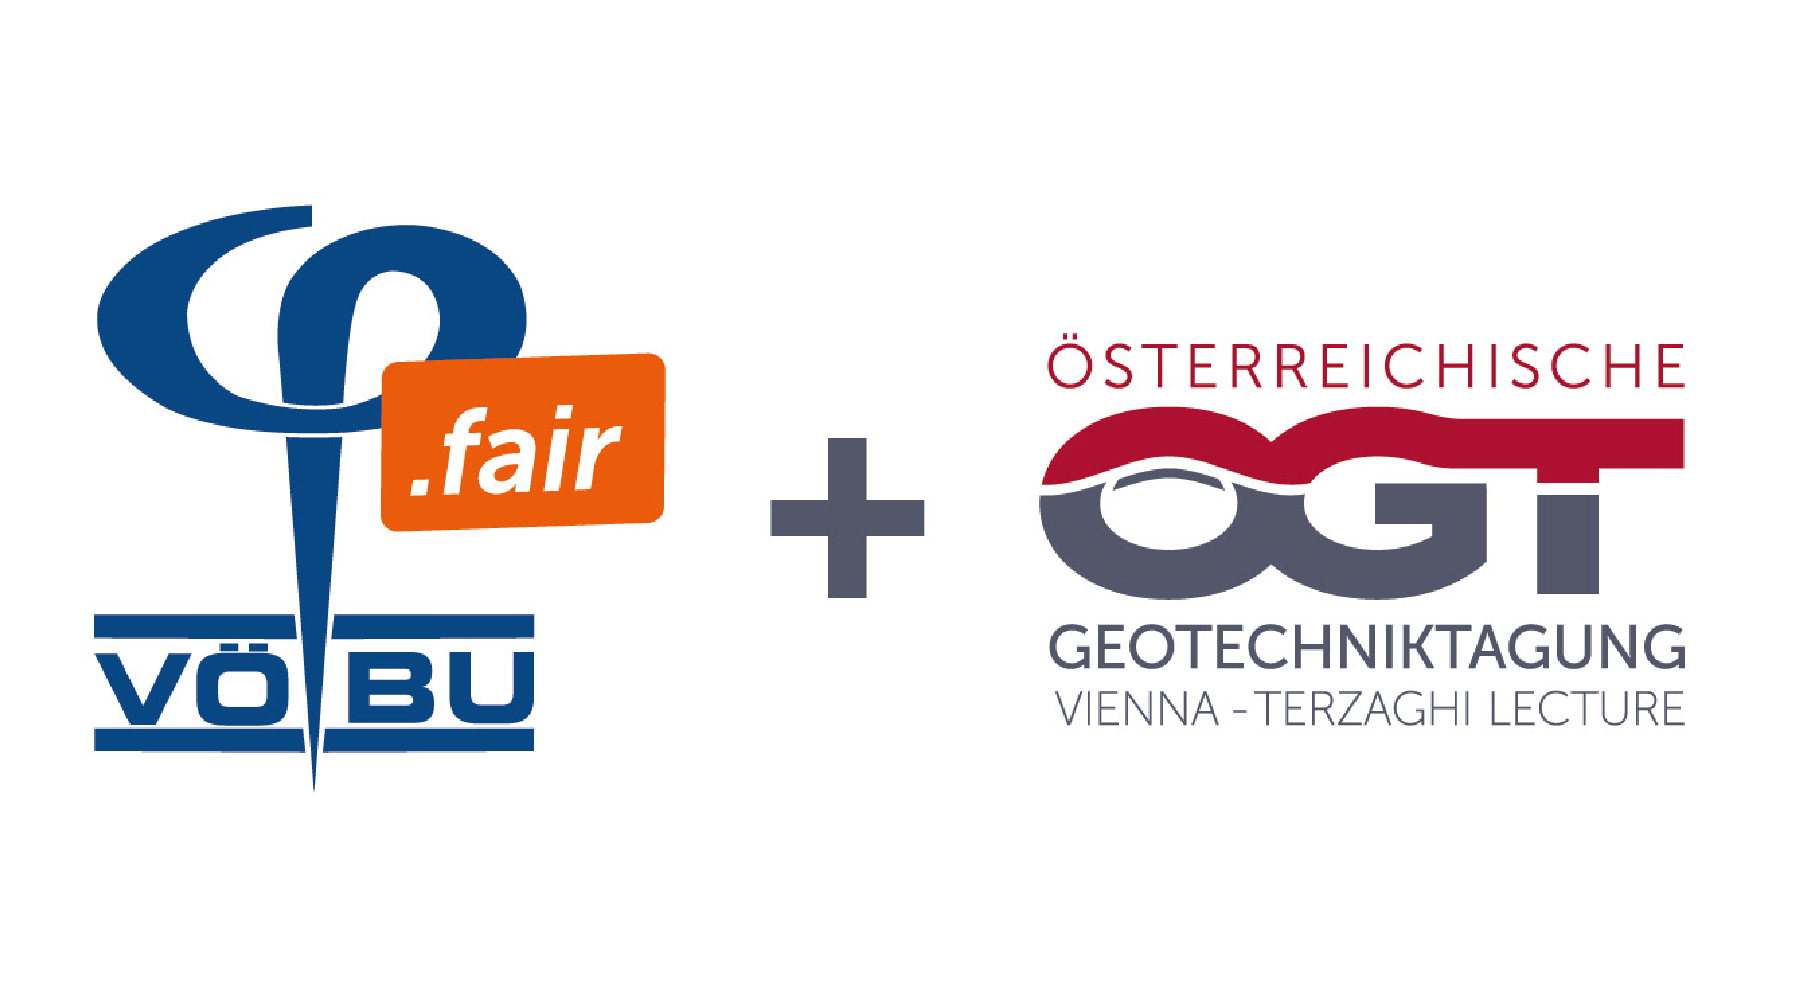 fielddata.io GmbH at the 12th Austrian Geotechnical Conference & the VÖBU FAIR in Vienna